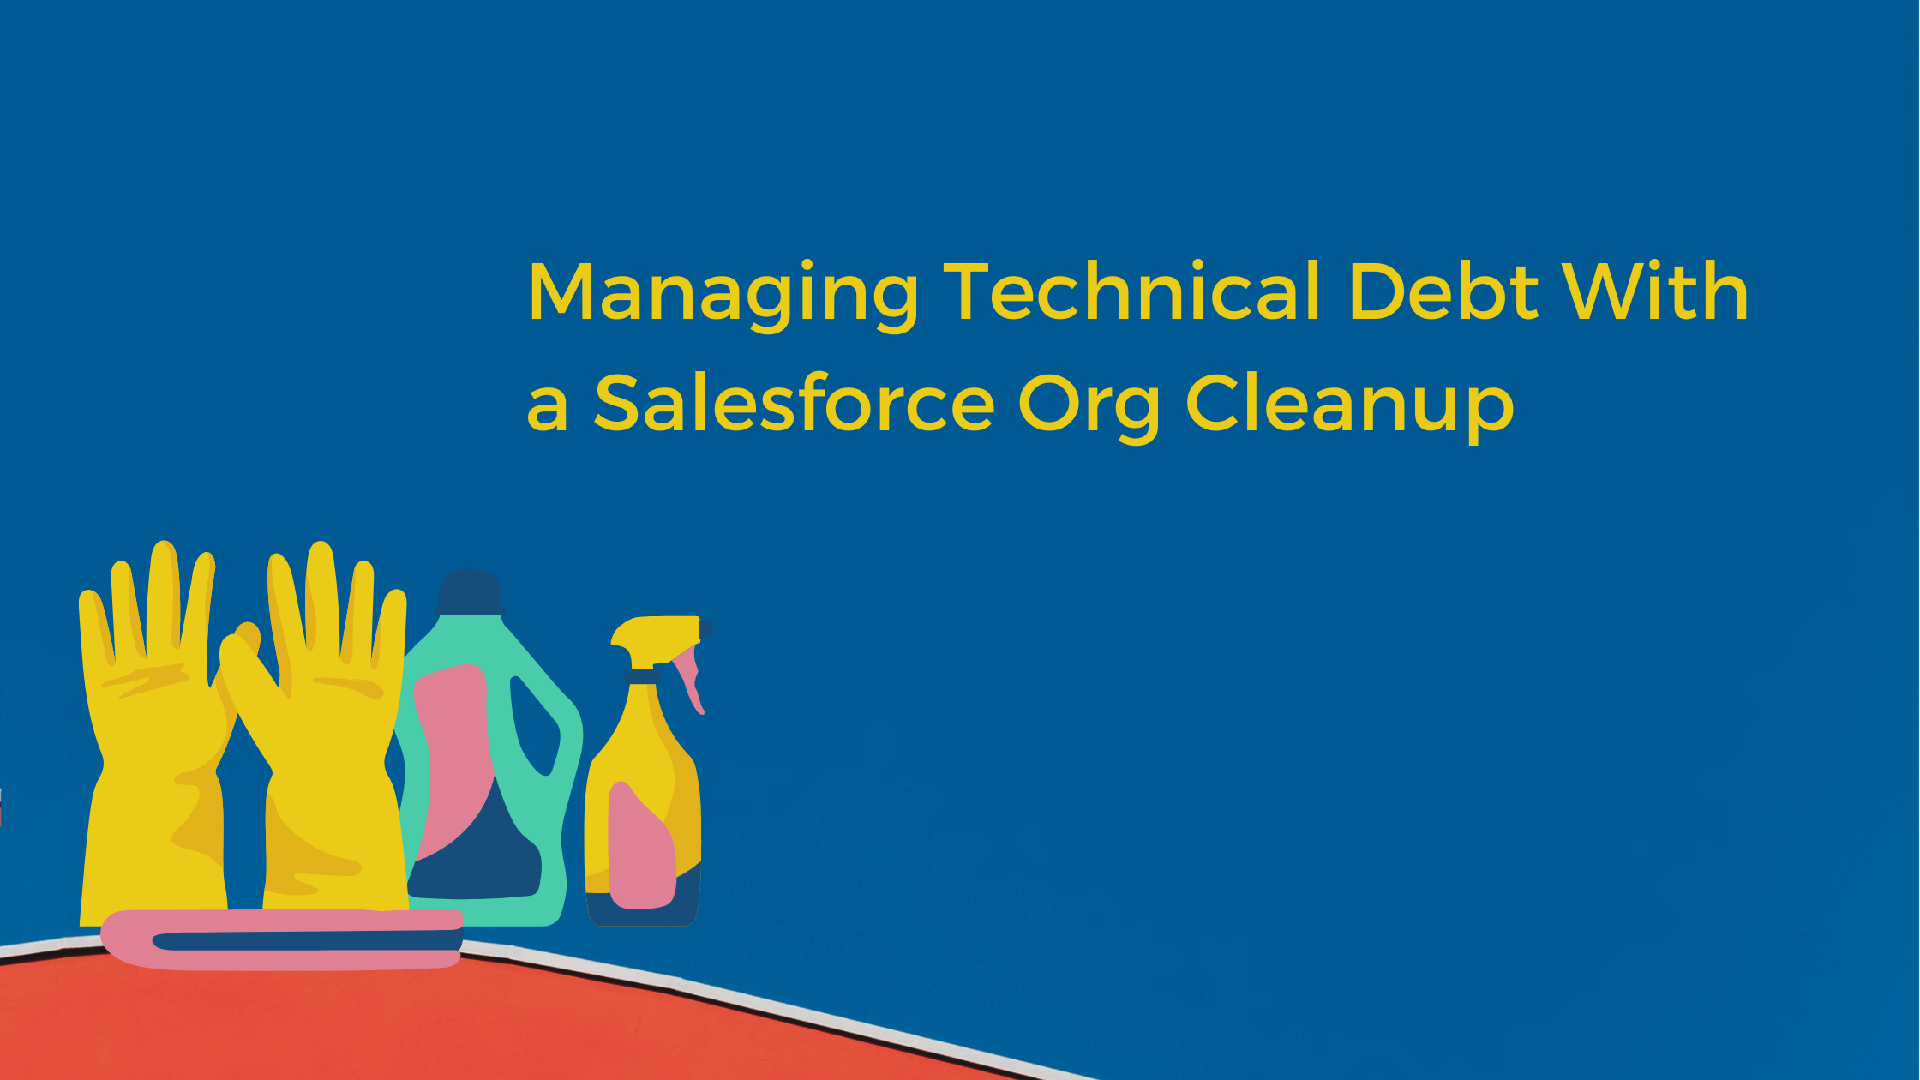 Managing Technical Debt in Salesforce